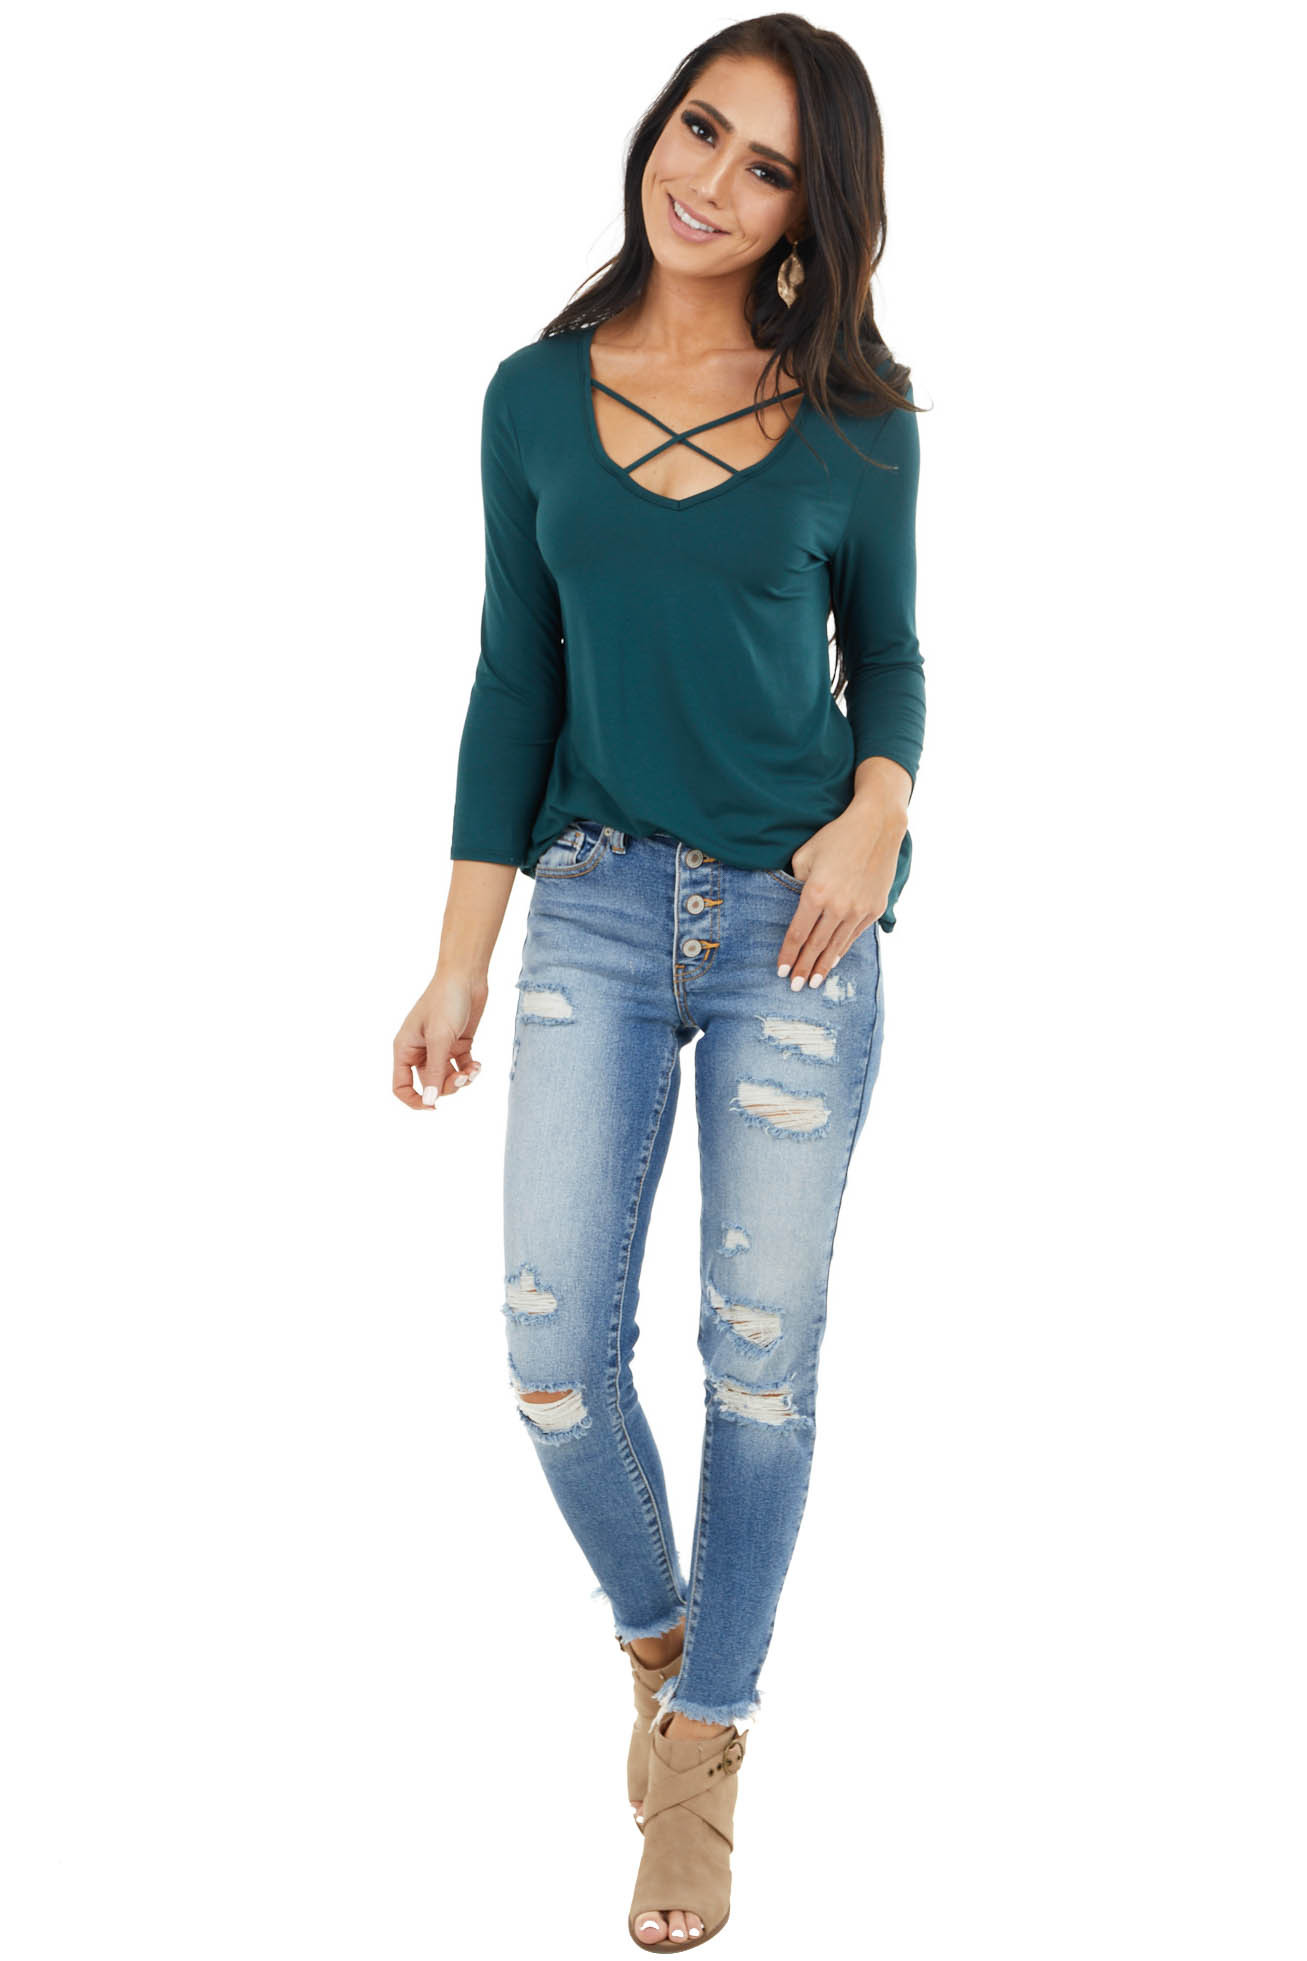 Pine Green 3/4 Sleeve Knit Top with Criss Cross Details